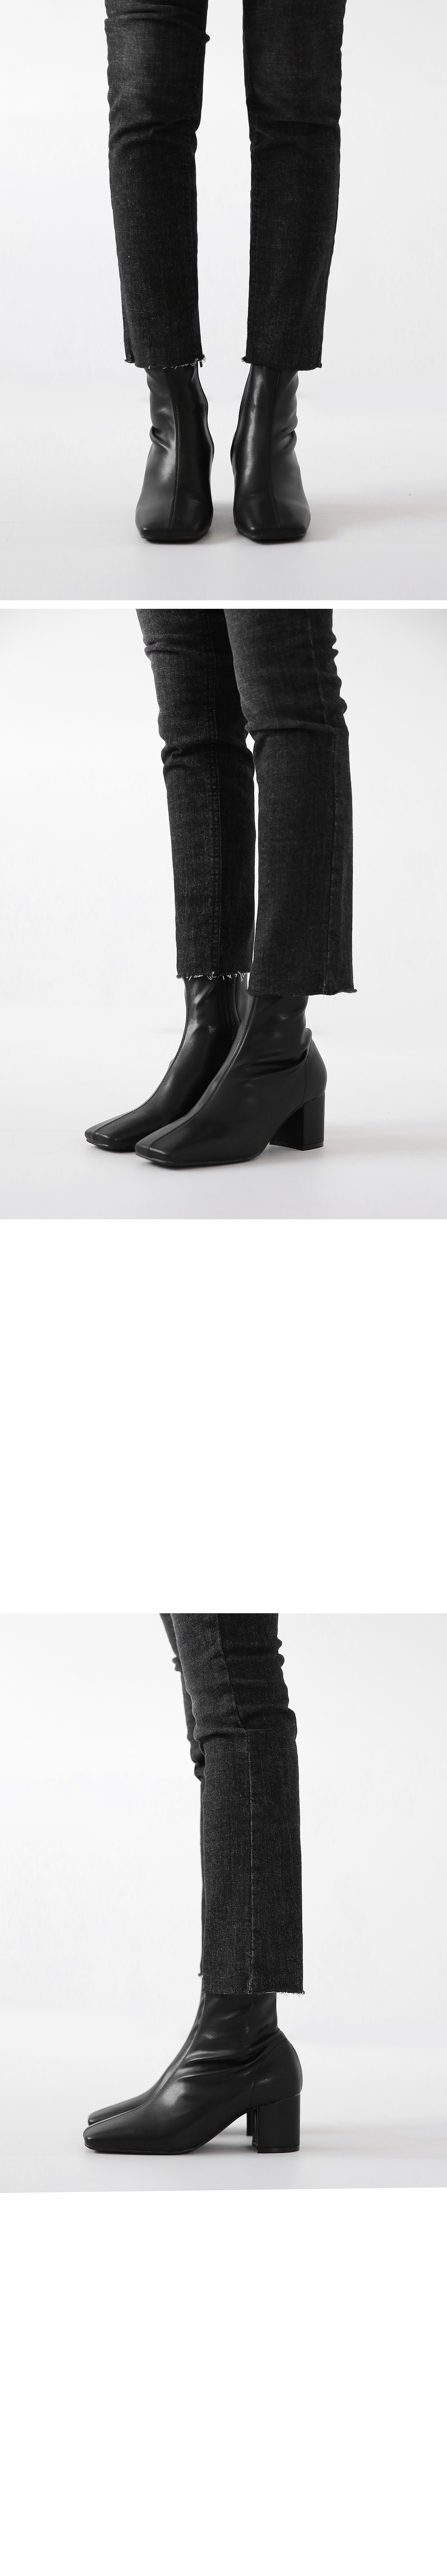 Loe boxer ankle boots